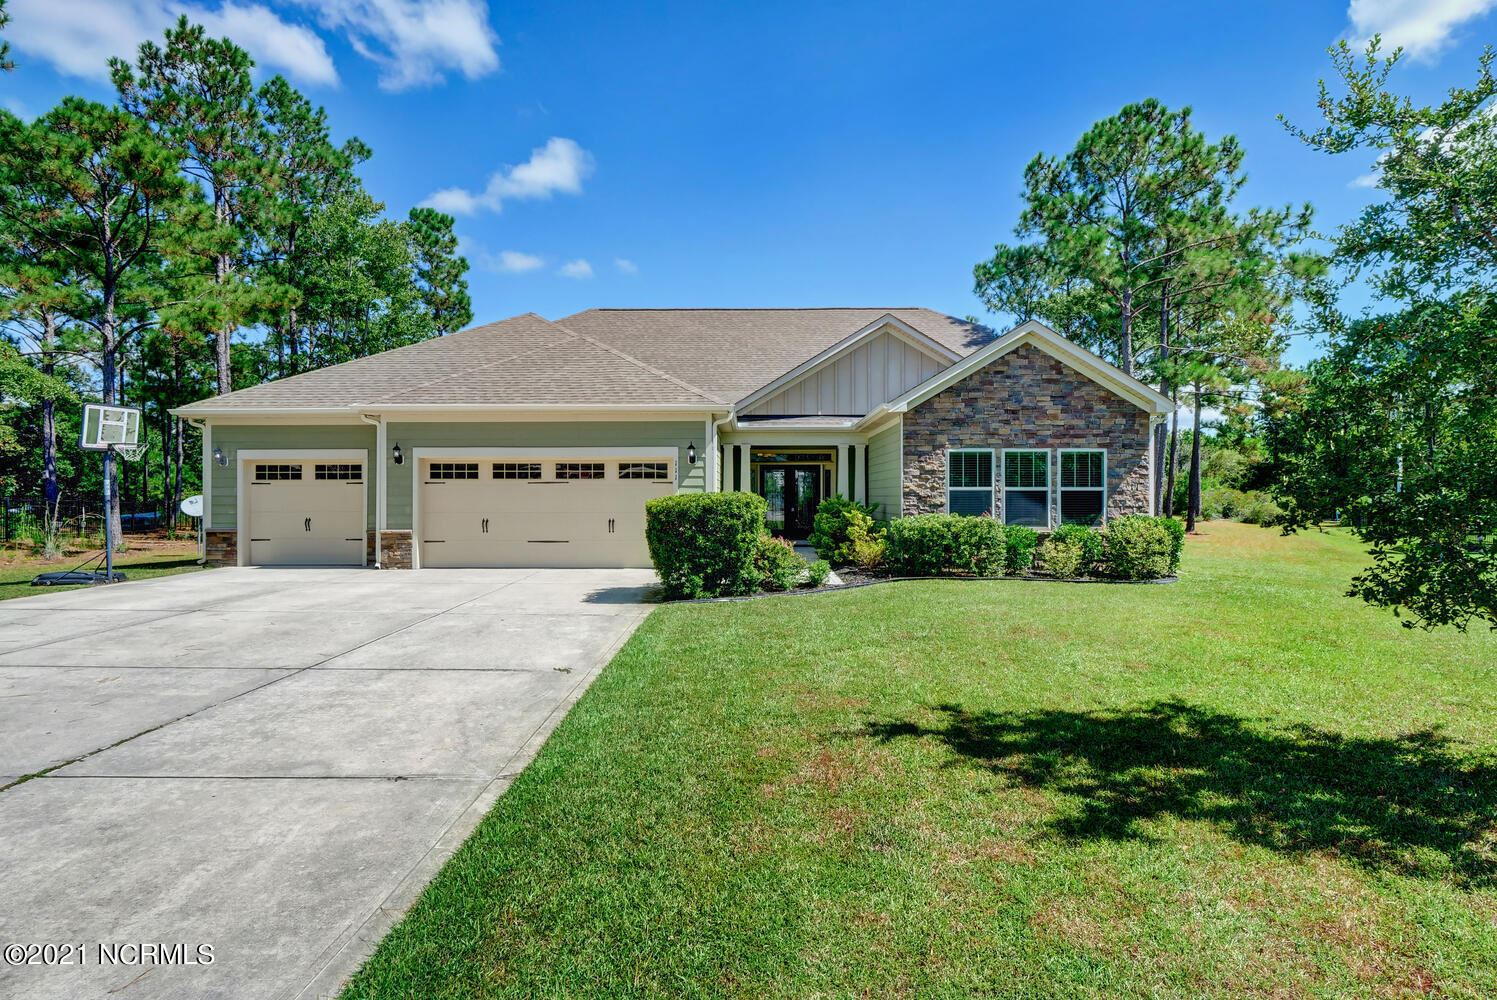 Photo of 111 Teal Court, Sneads Ferry, NC 28460 (MLS # 100292524)